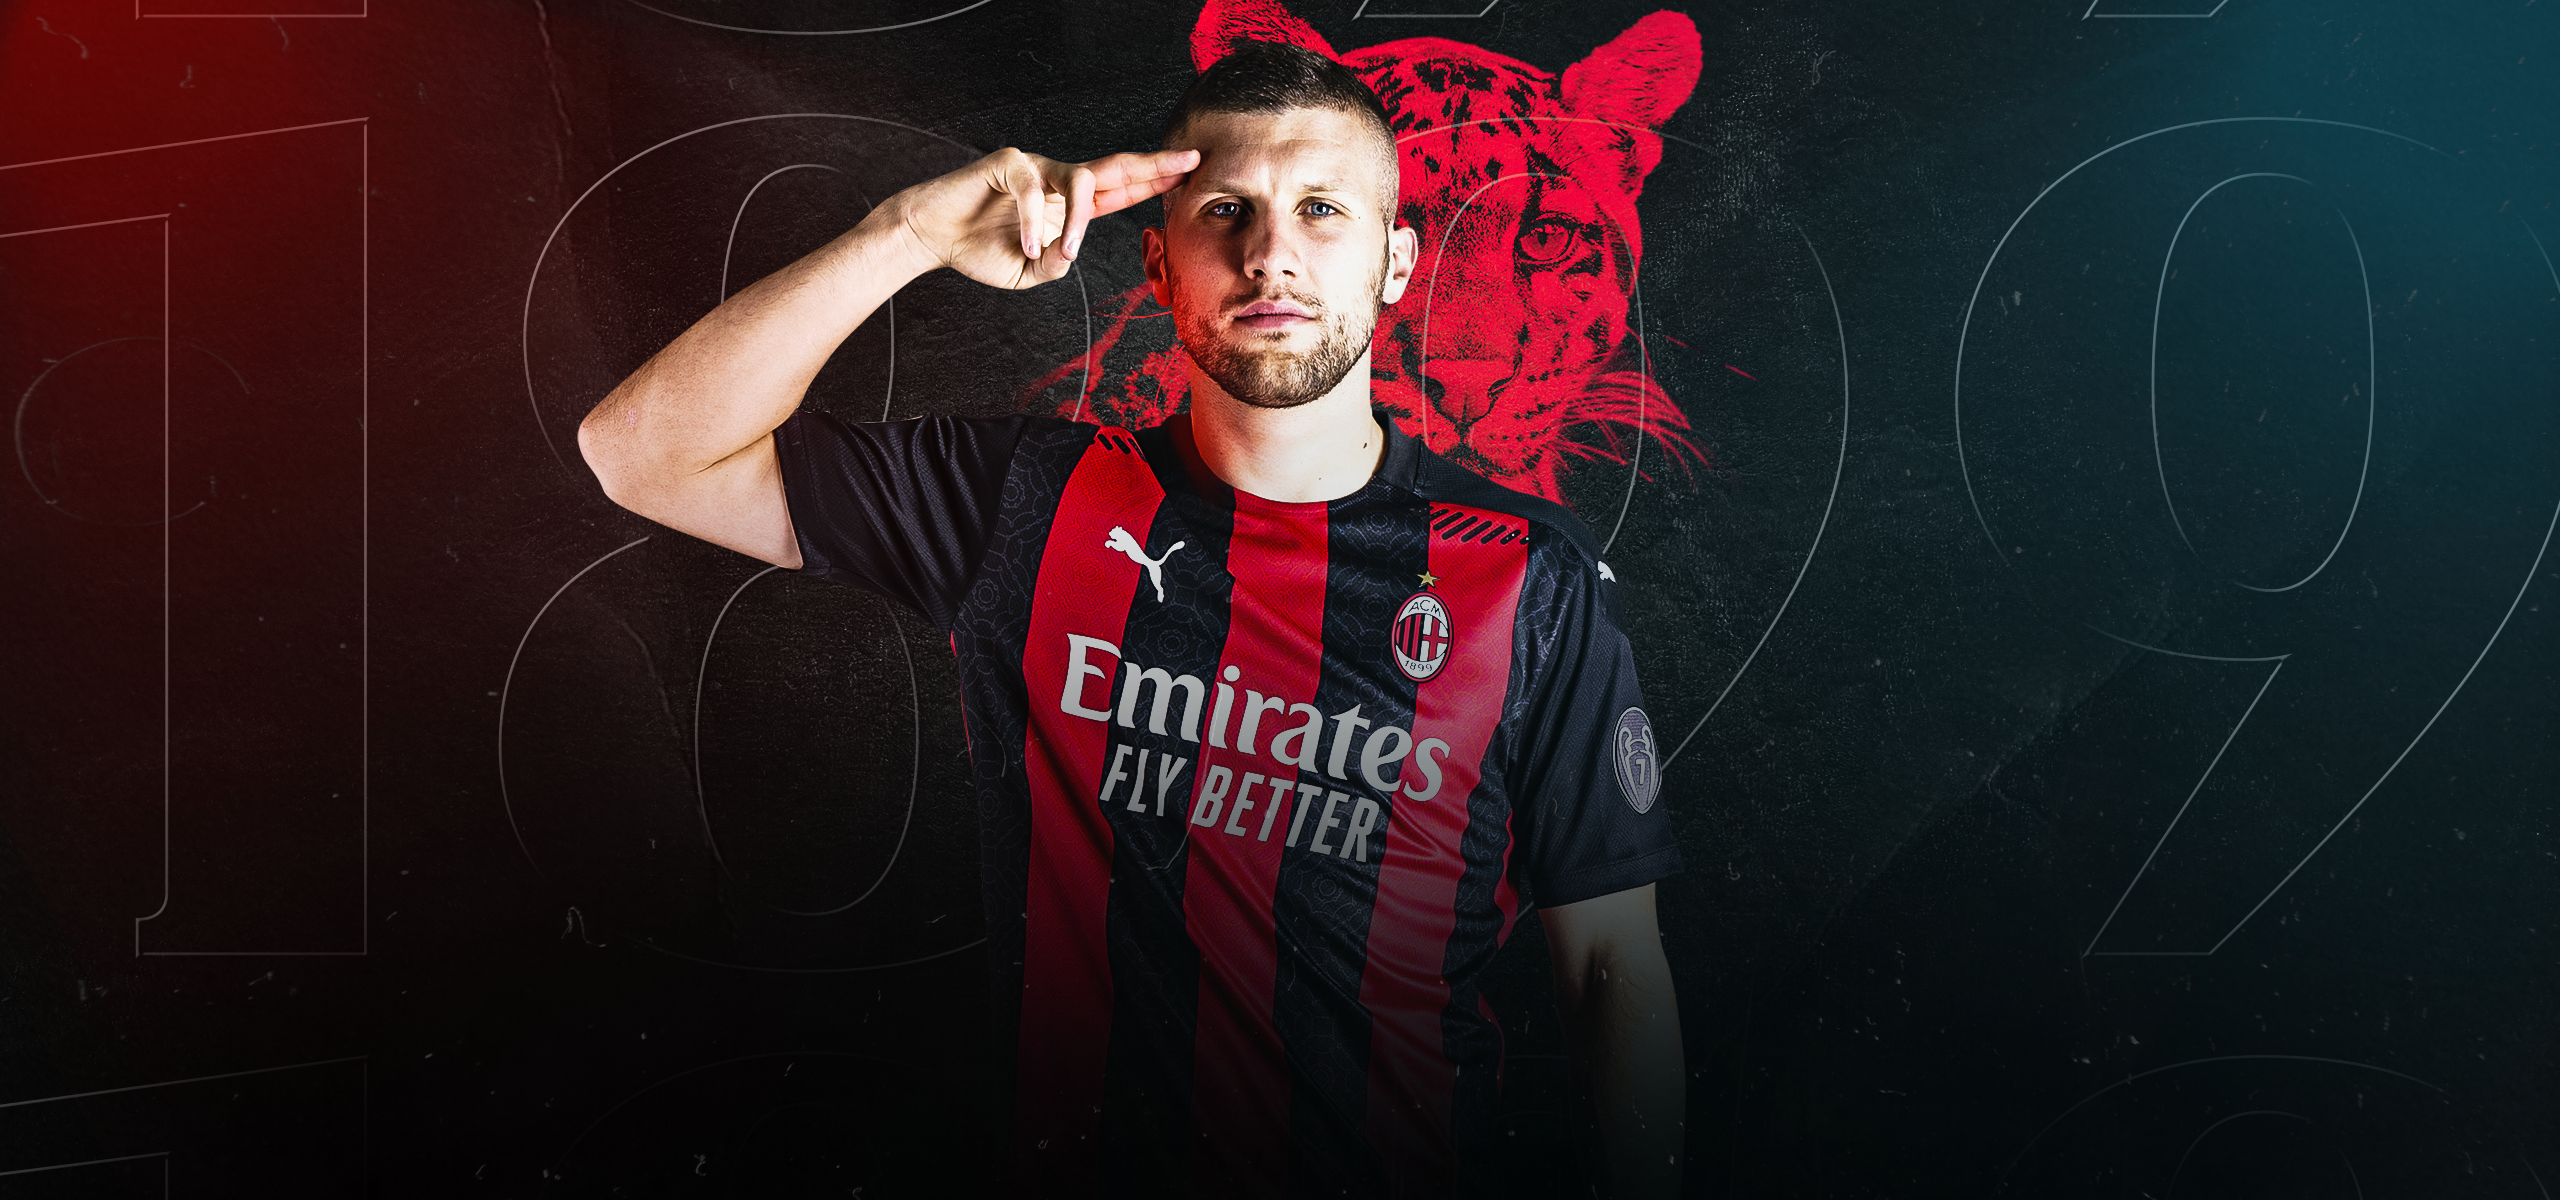 Ibra will lead, Rebic will power the new Milan charge